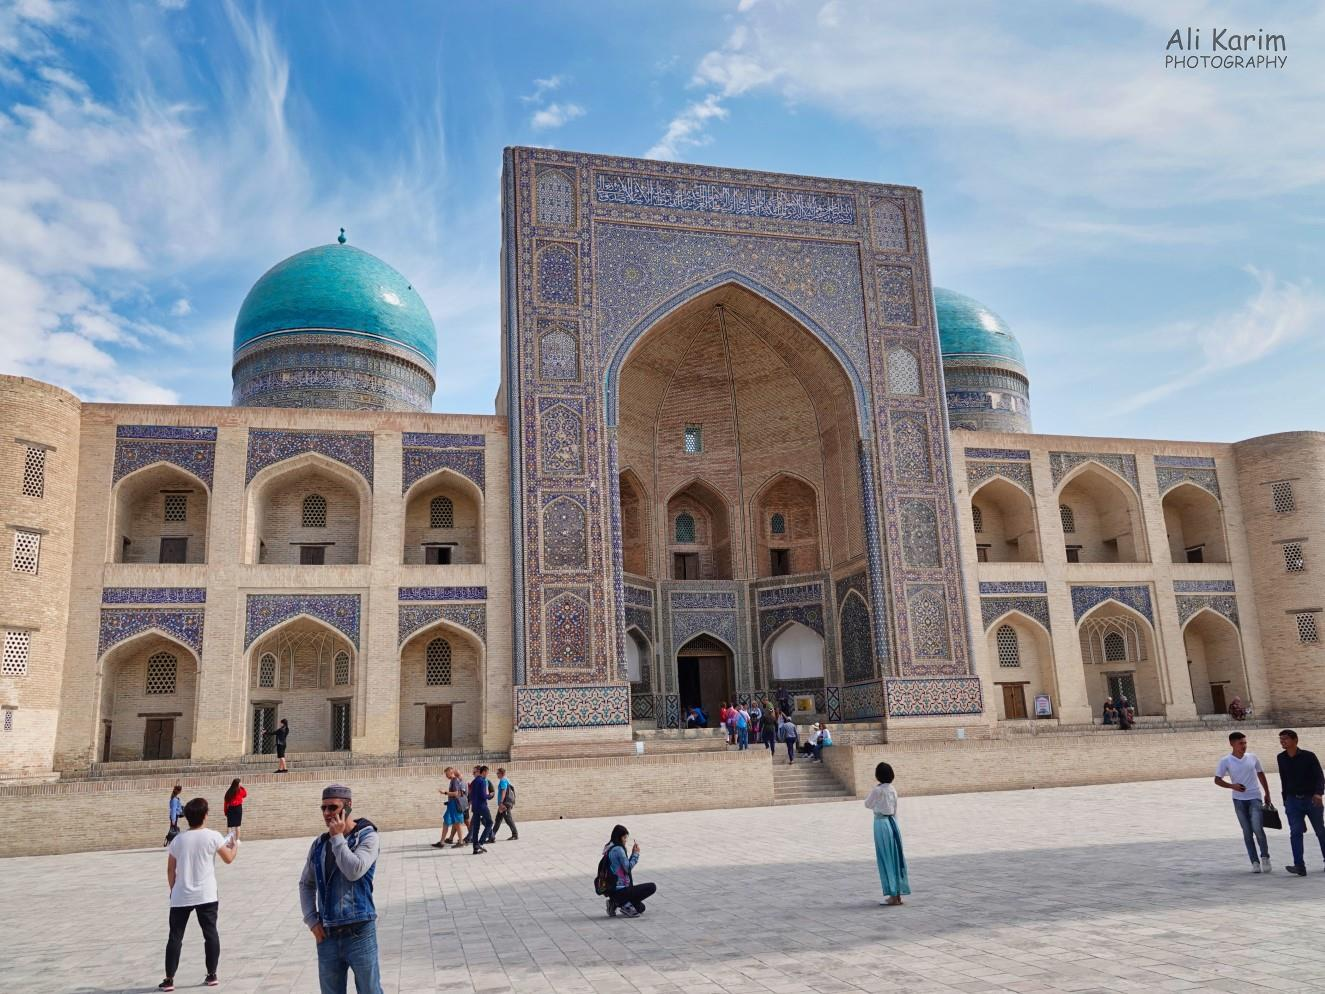 Bukhara, Oct 2019, The Mir Arab Madrassah, with its 2 blue tiled domes, was across the square from the mosque